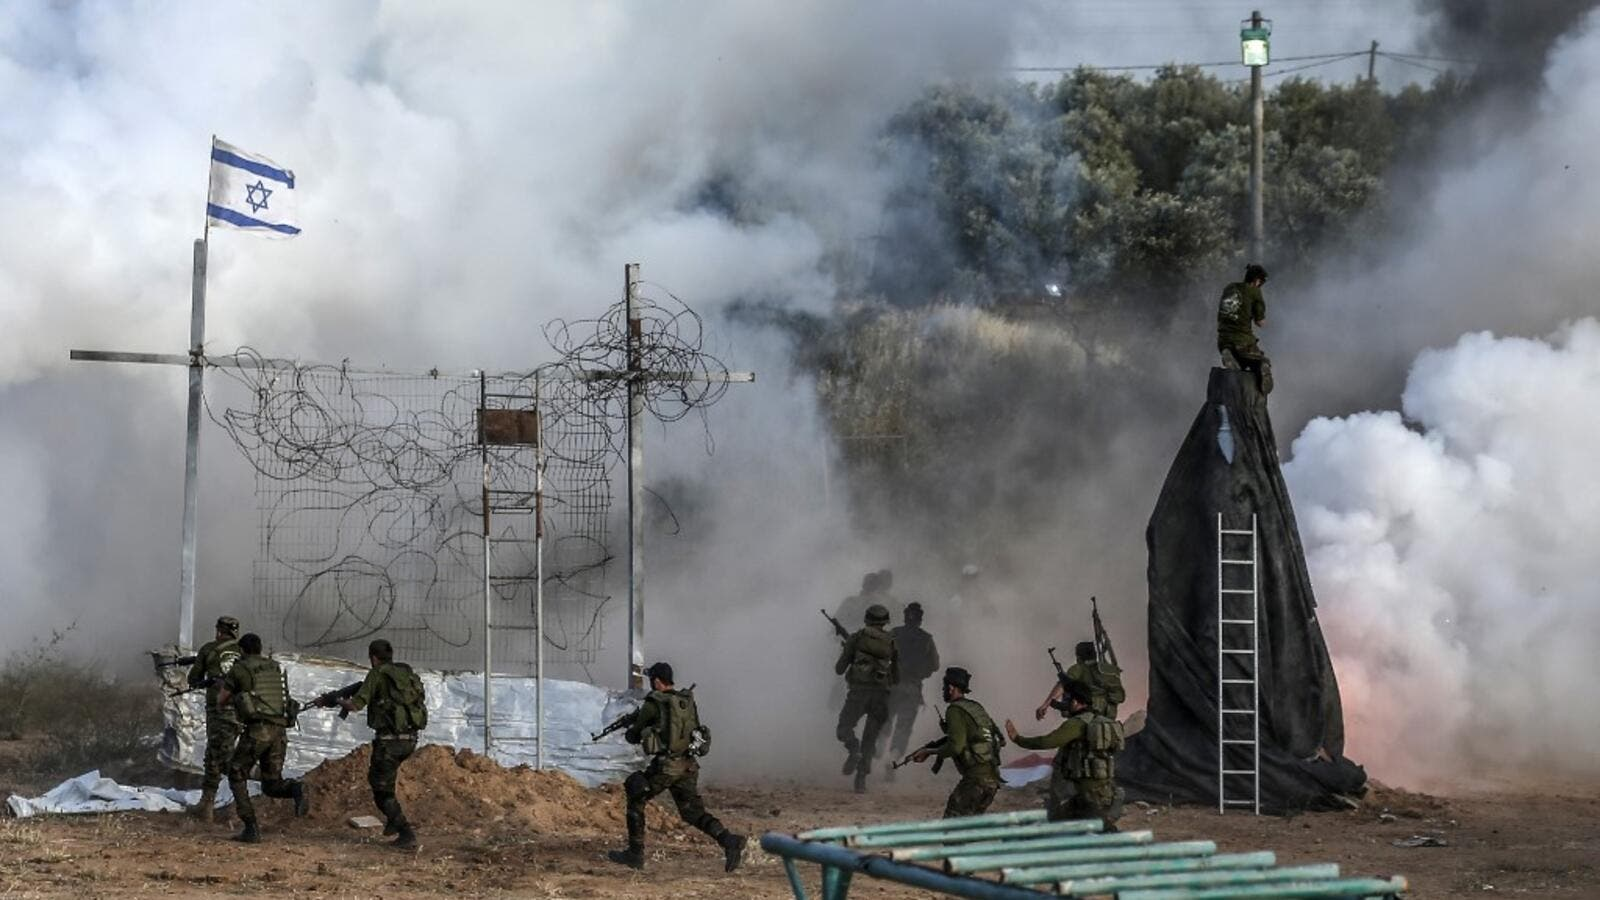 Israeli army: Hamas fired 6 rockets towards Israel